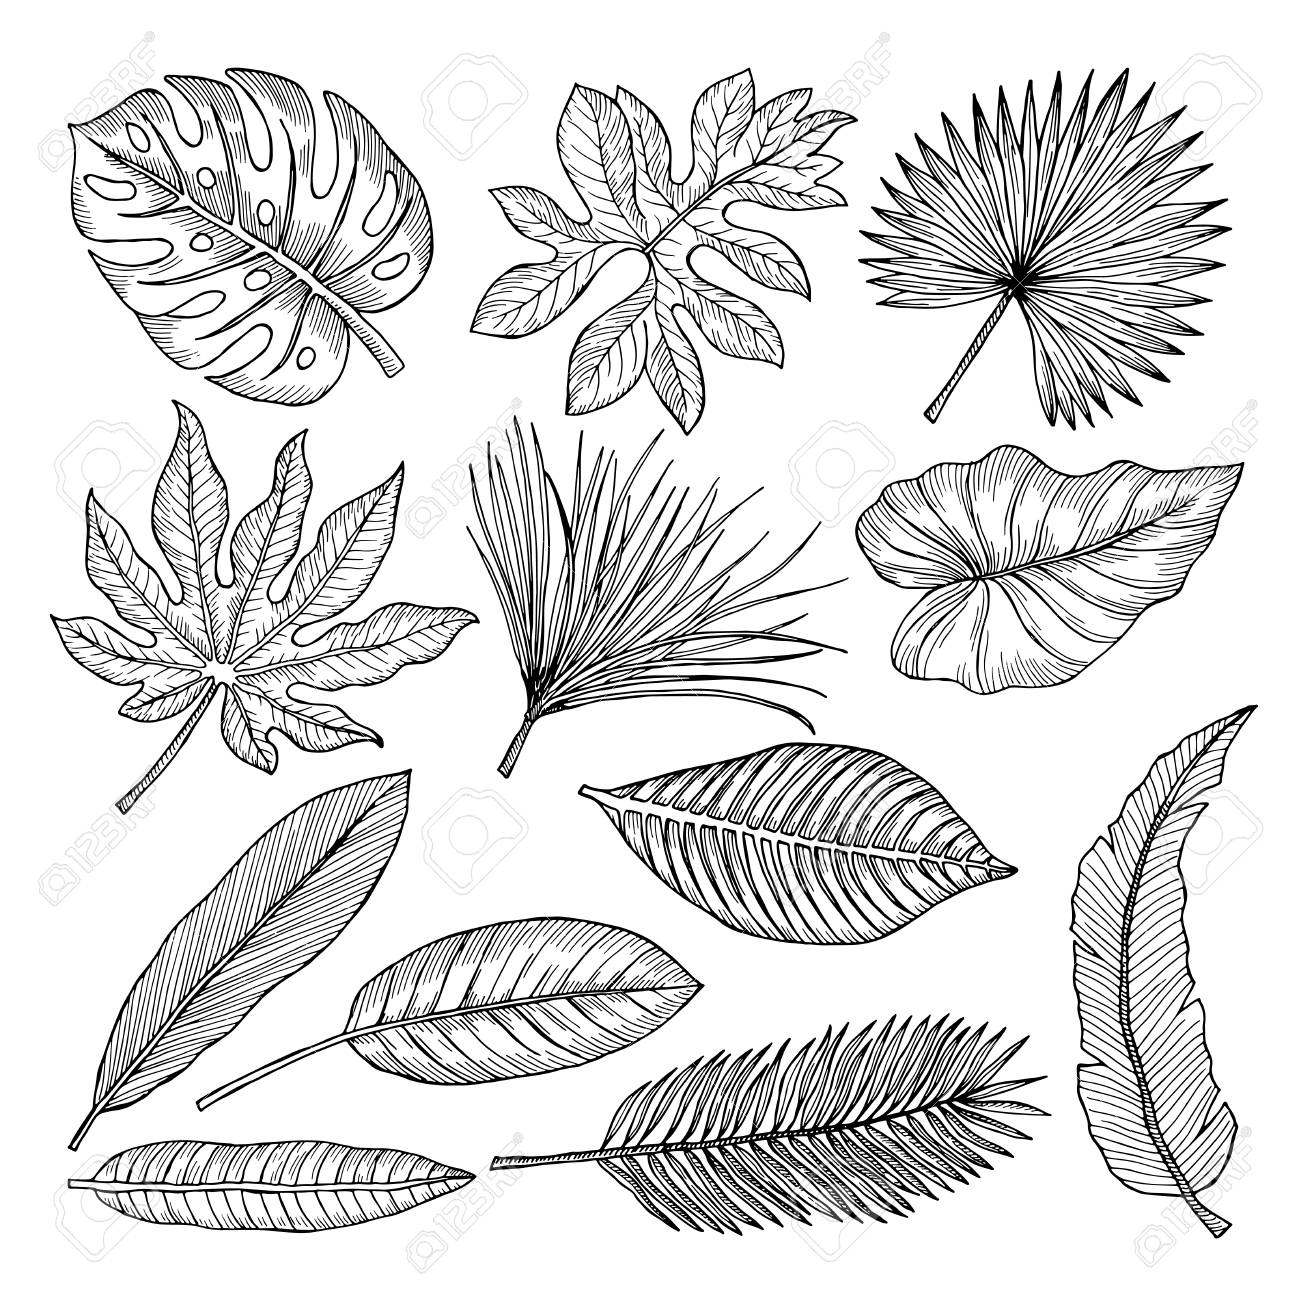 Tropical Leaves And Plants Vector Hand Drawing Pictures Isolate Royalty Free Cliparts Vectors And Stock Illustration Image 87000068 These tropical leaves have transparent backgrounds, thus you can easily drag and drop them in your layout. tropical leaves and plants vector hand drawing pictures isolate